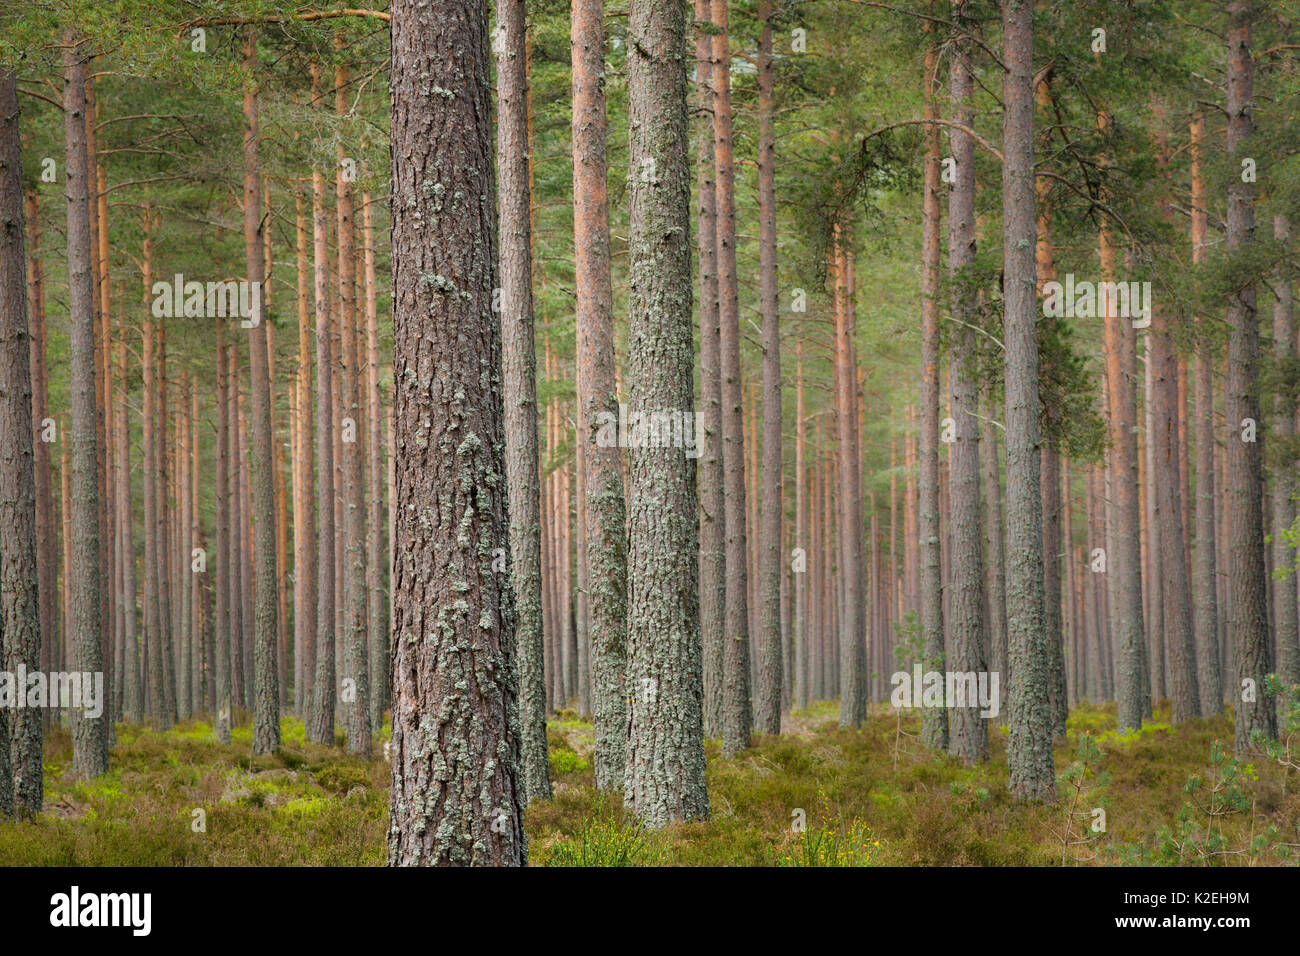 Pine trees on the Balmoral Estate, Deeside, Aberdeenshire, Scotland, UK, May 2014. - Stock Image